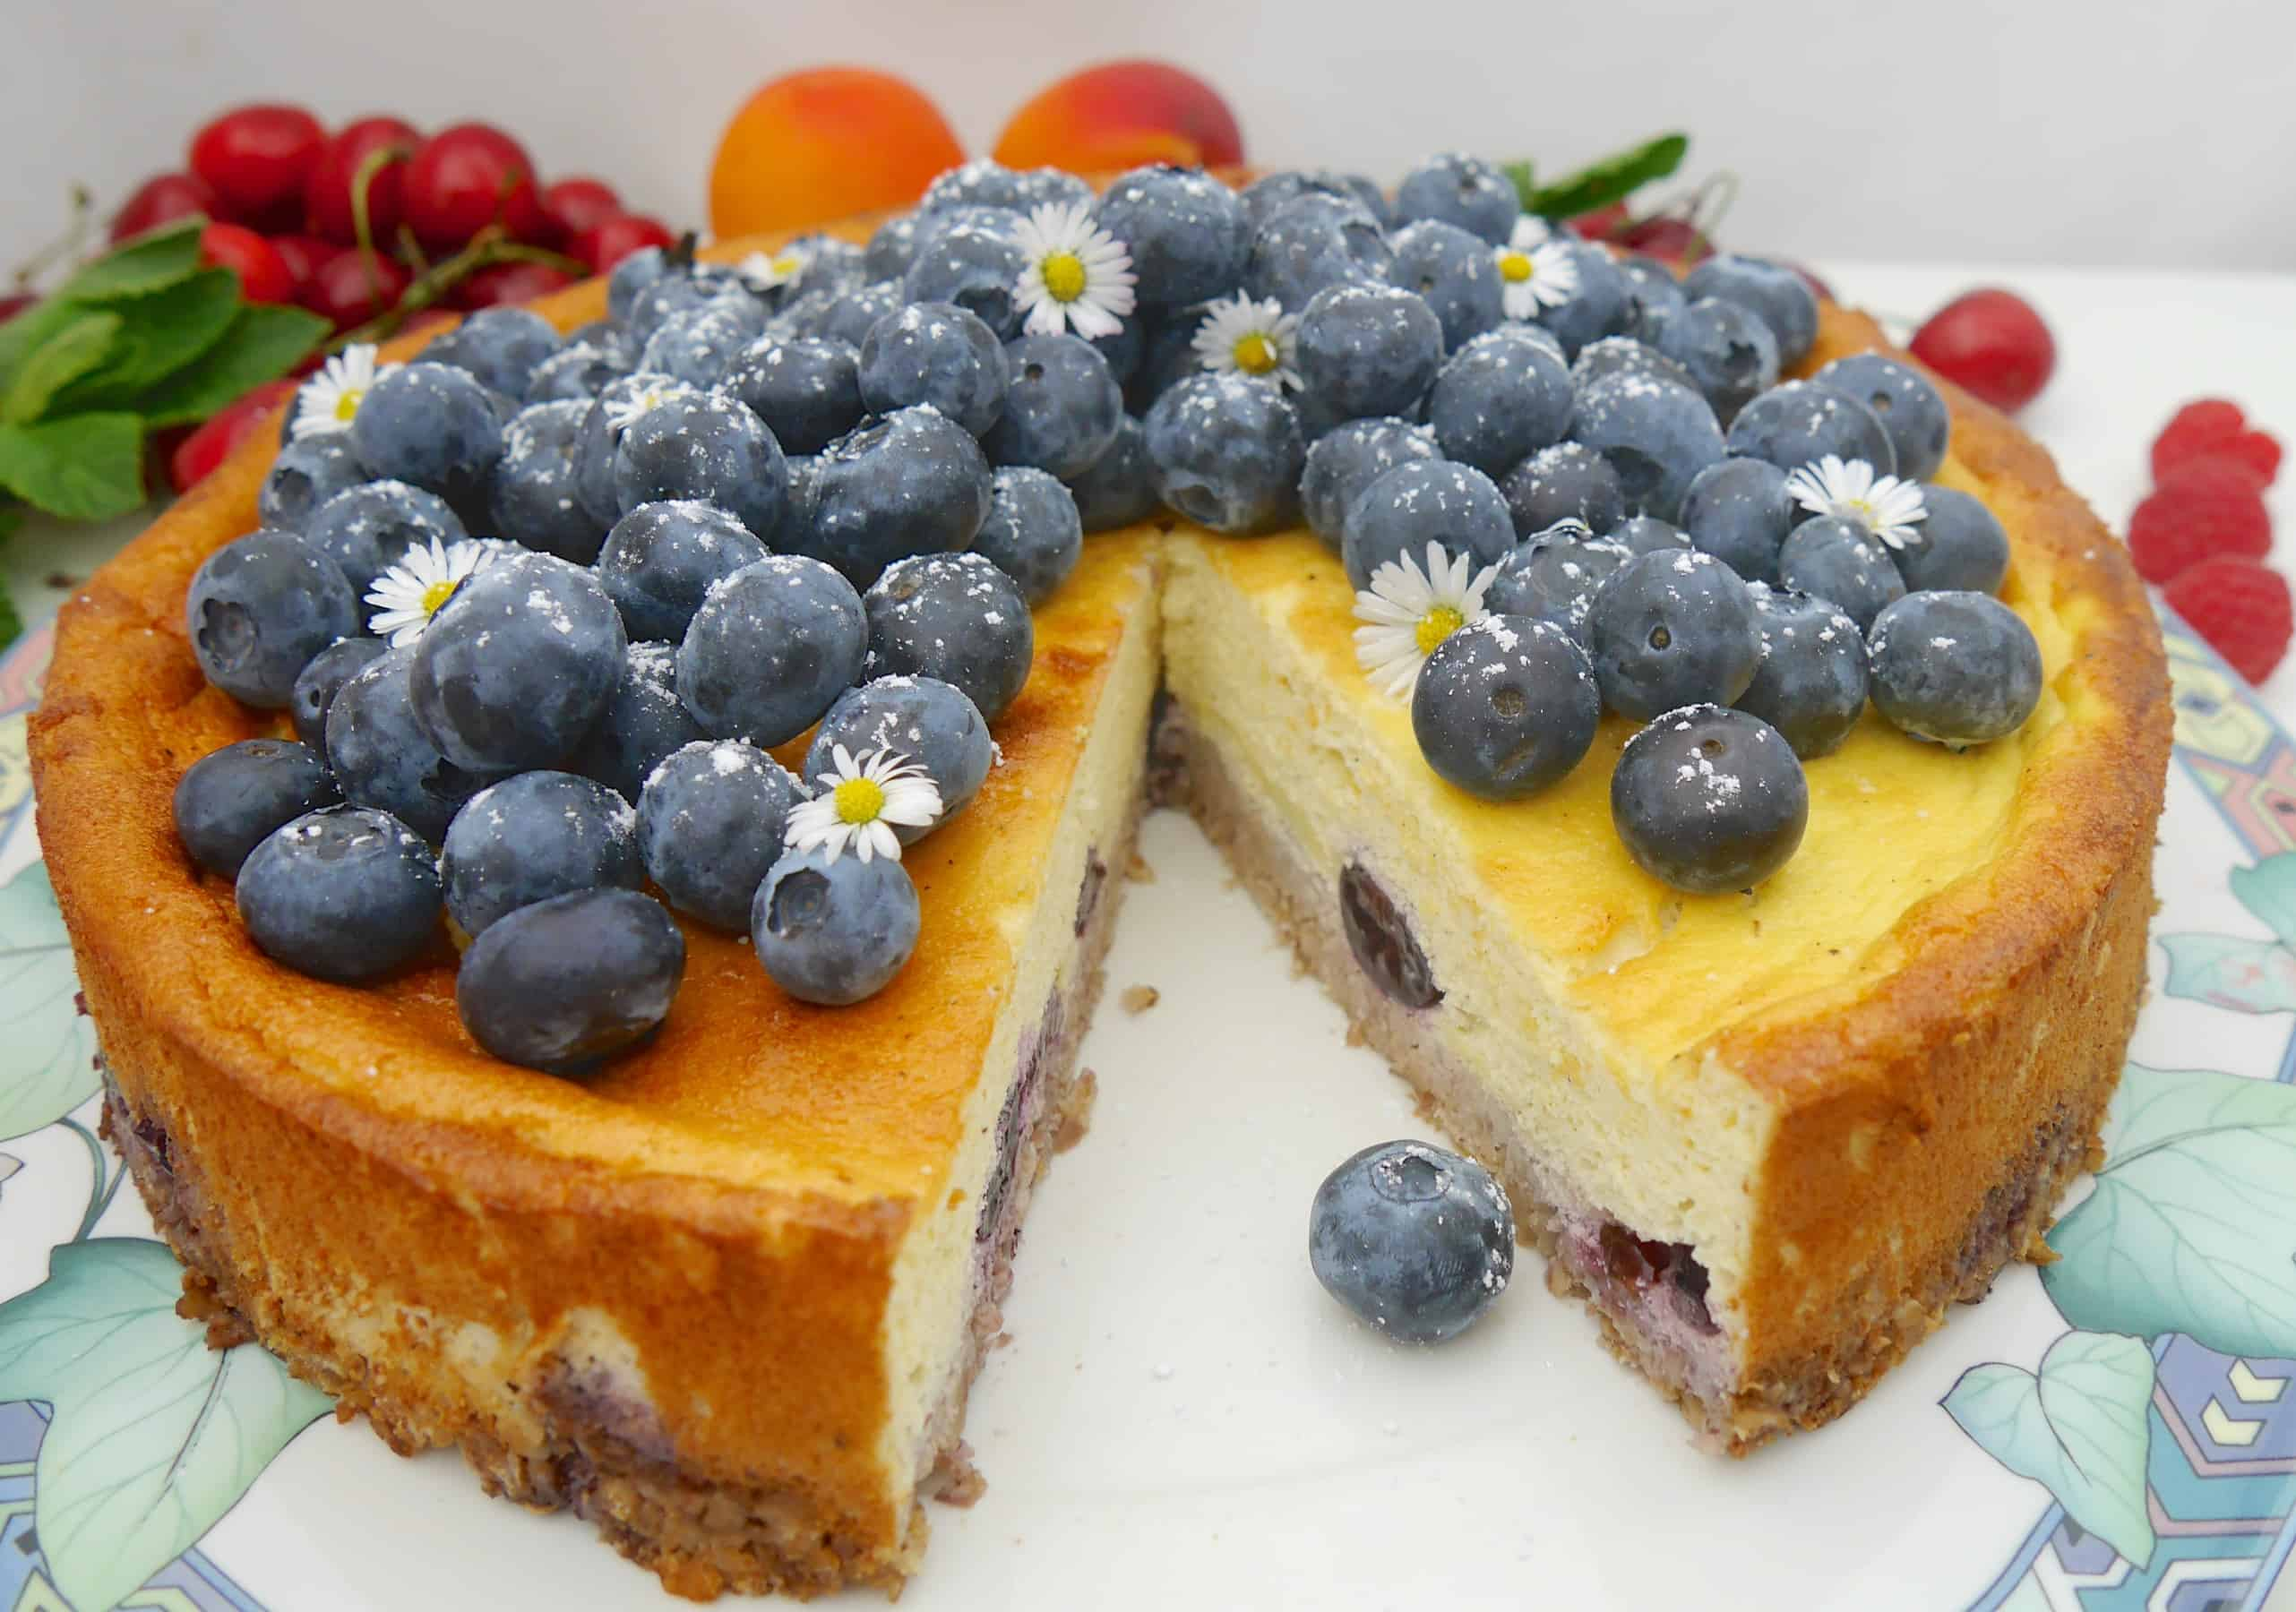 Blueberry Skyr Cake by Dr. Alexa Iwan